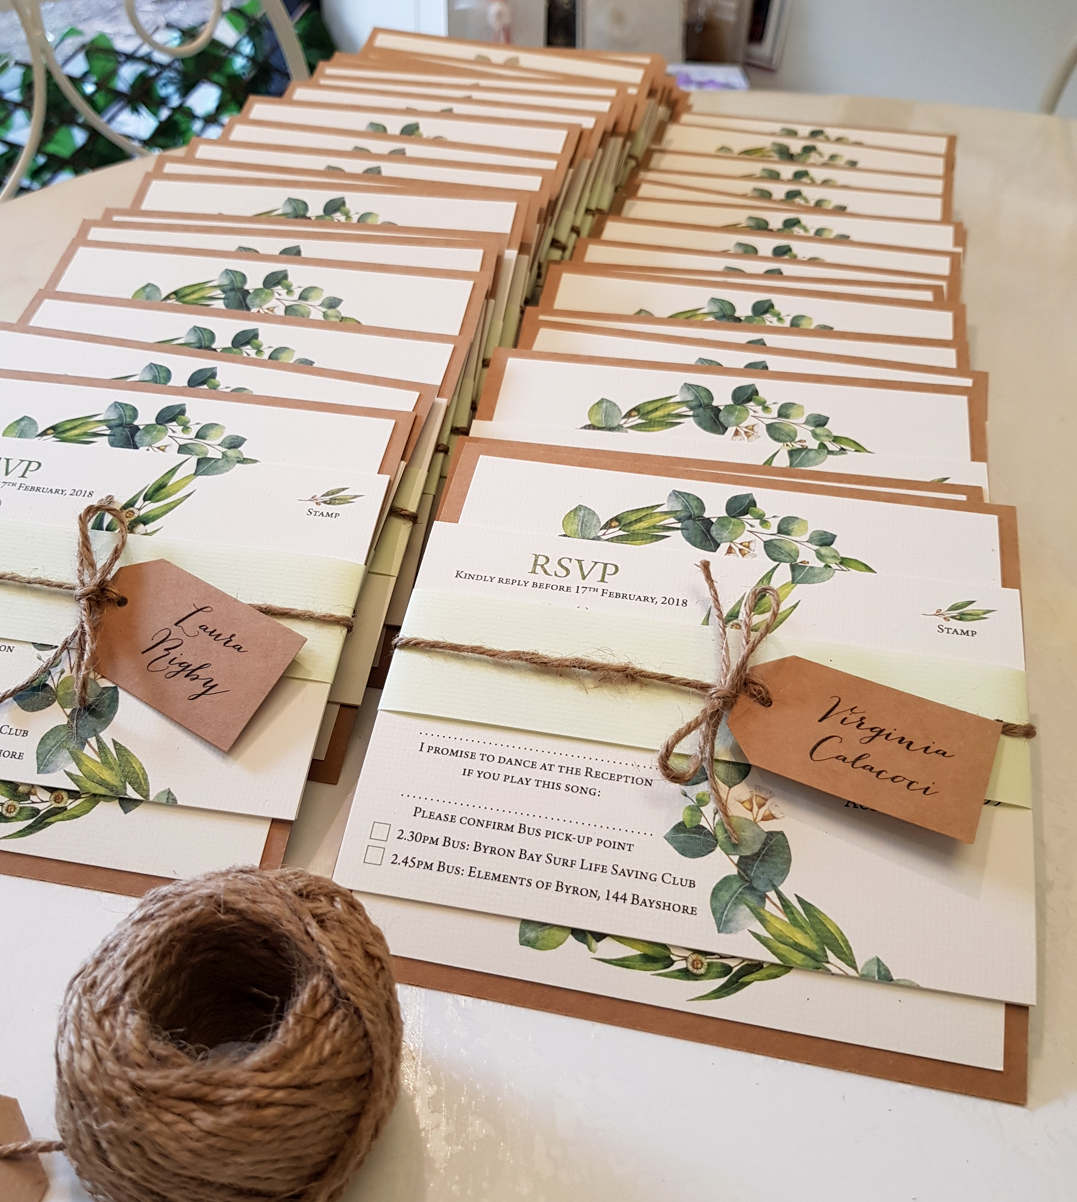 Nature Gum leaf wreath wedding invitations Sydney Australia rustic natural